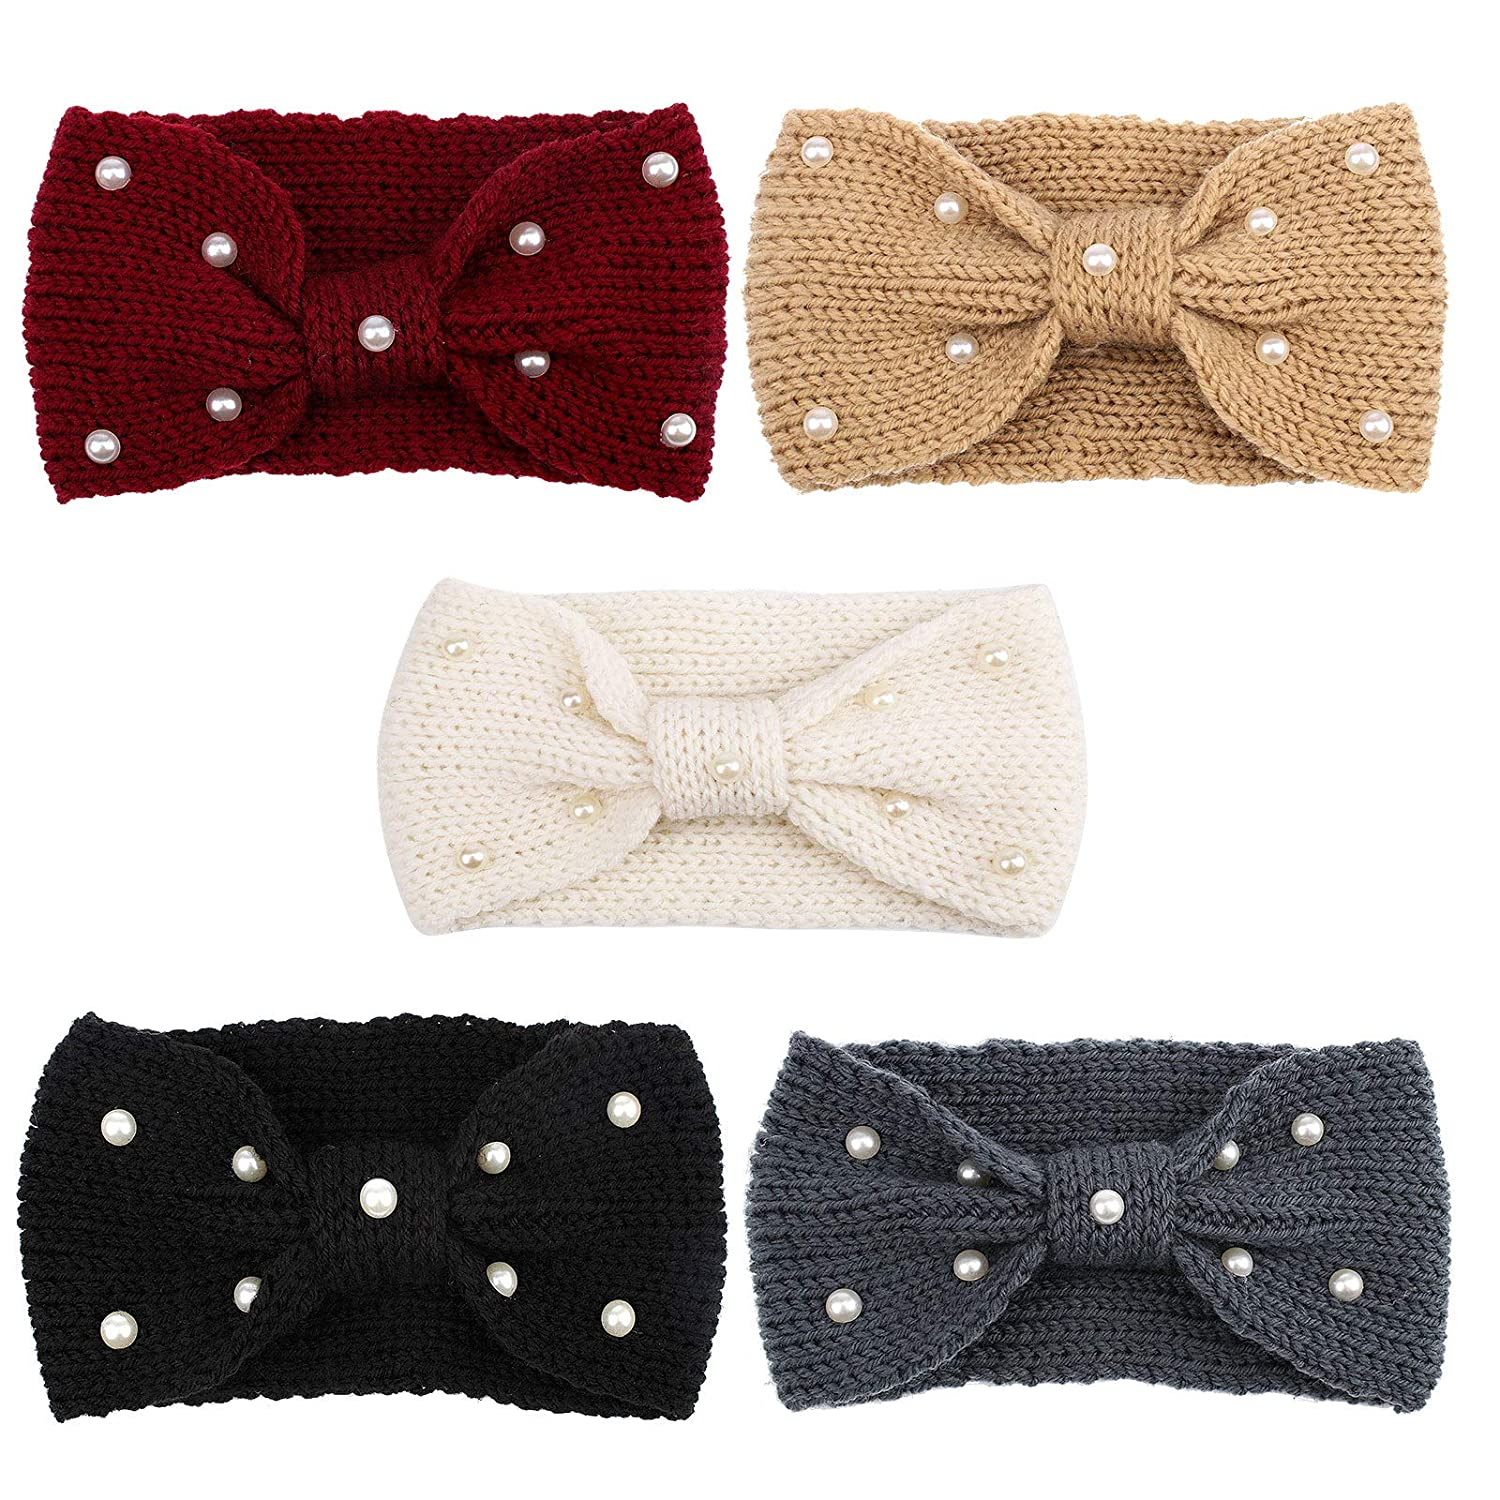 YARIEW 5 Pack Winter Headbands for Women Pearl Knotted Knitted Womens Ear Warmer Crochet Headband Turban Bow Hairband Gifts (Autumn&Winter Colors)